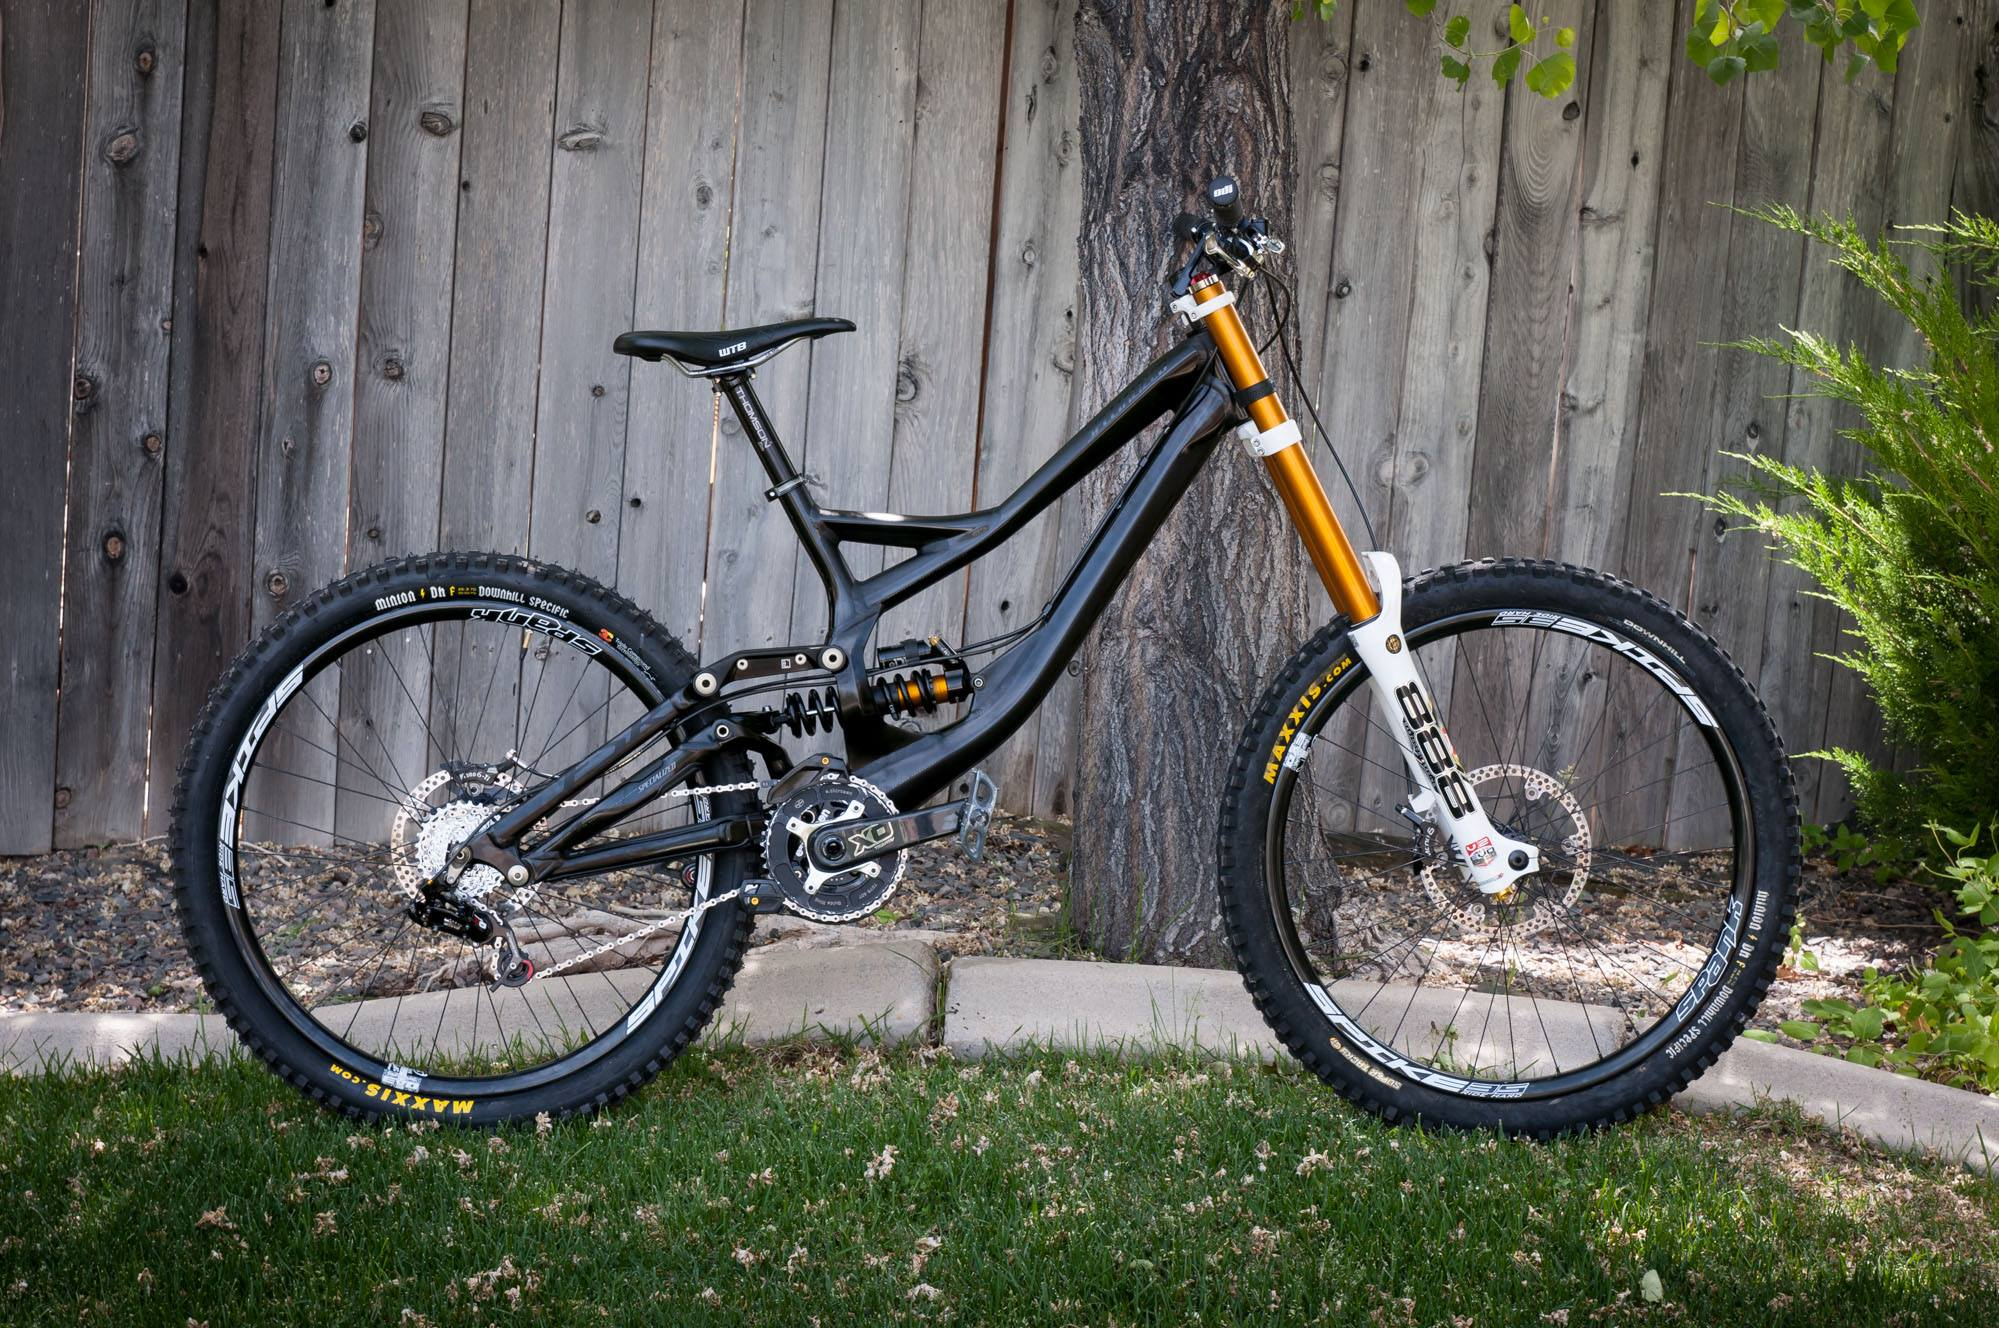 Chris Stowell's Specialized Demo 8